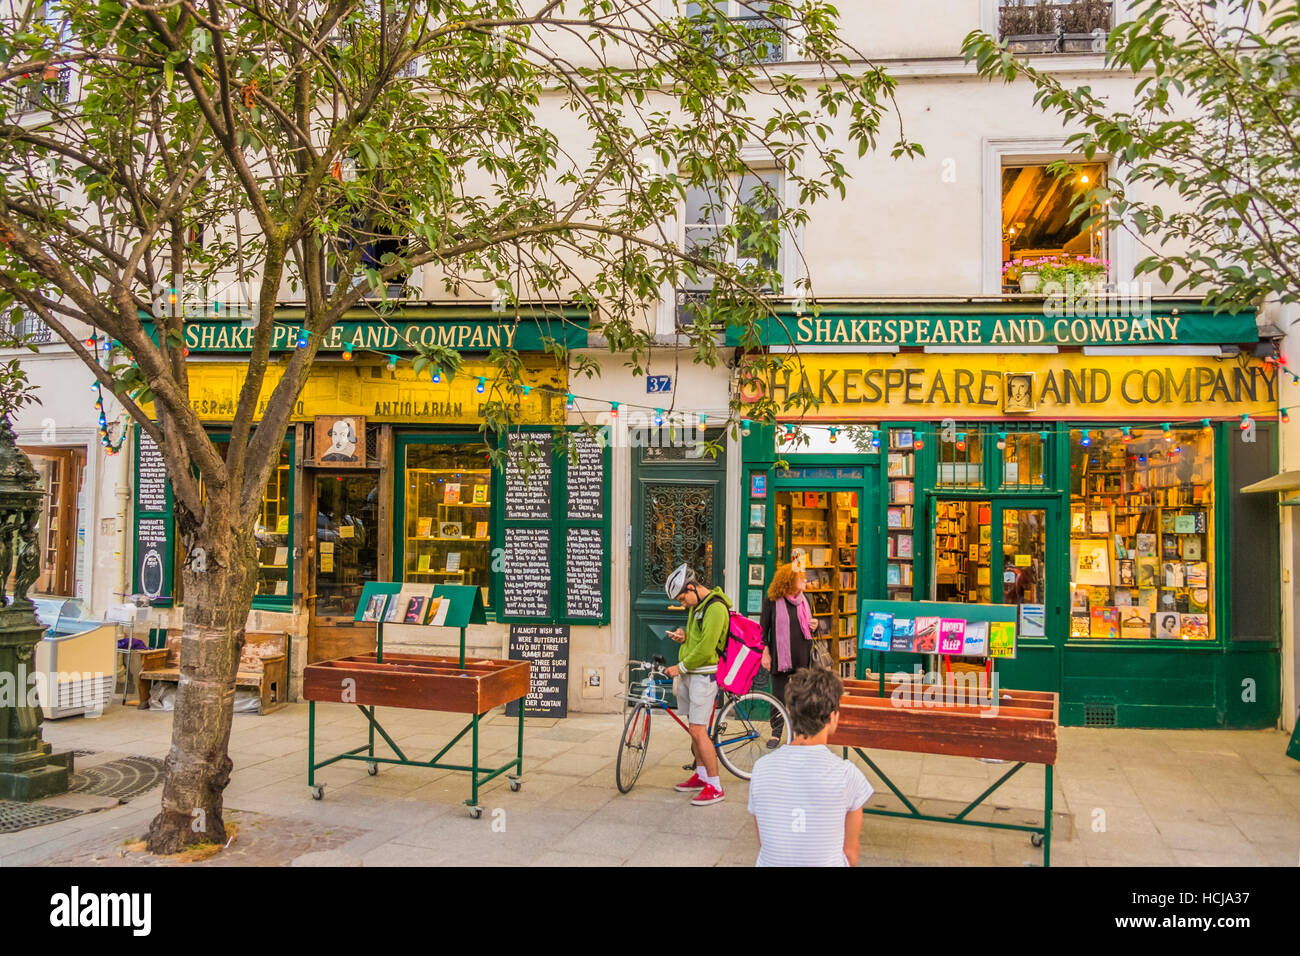 shakespeare and company bookstore, outside view, street scene - Stock Image